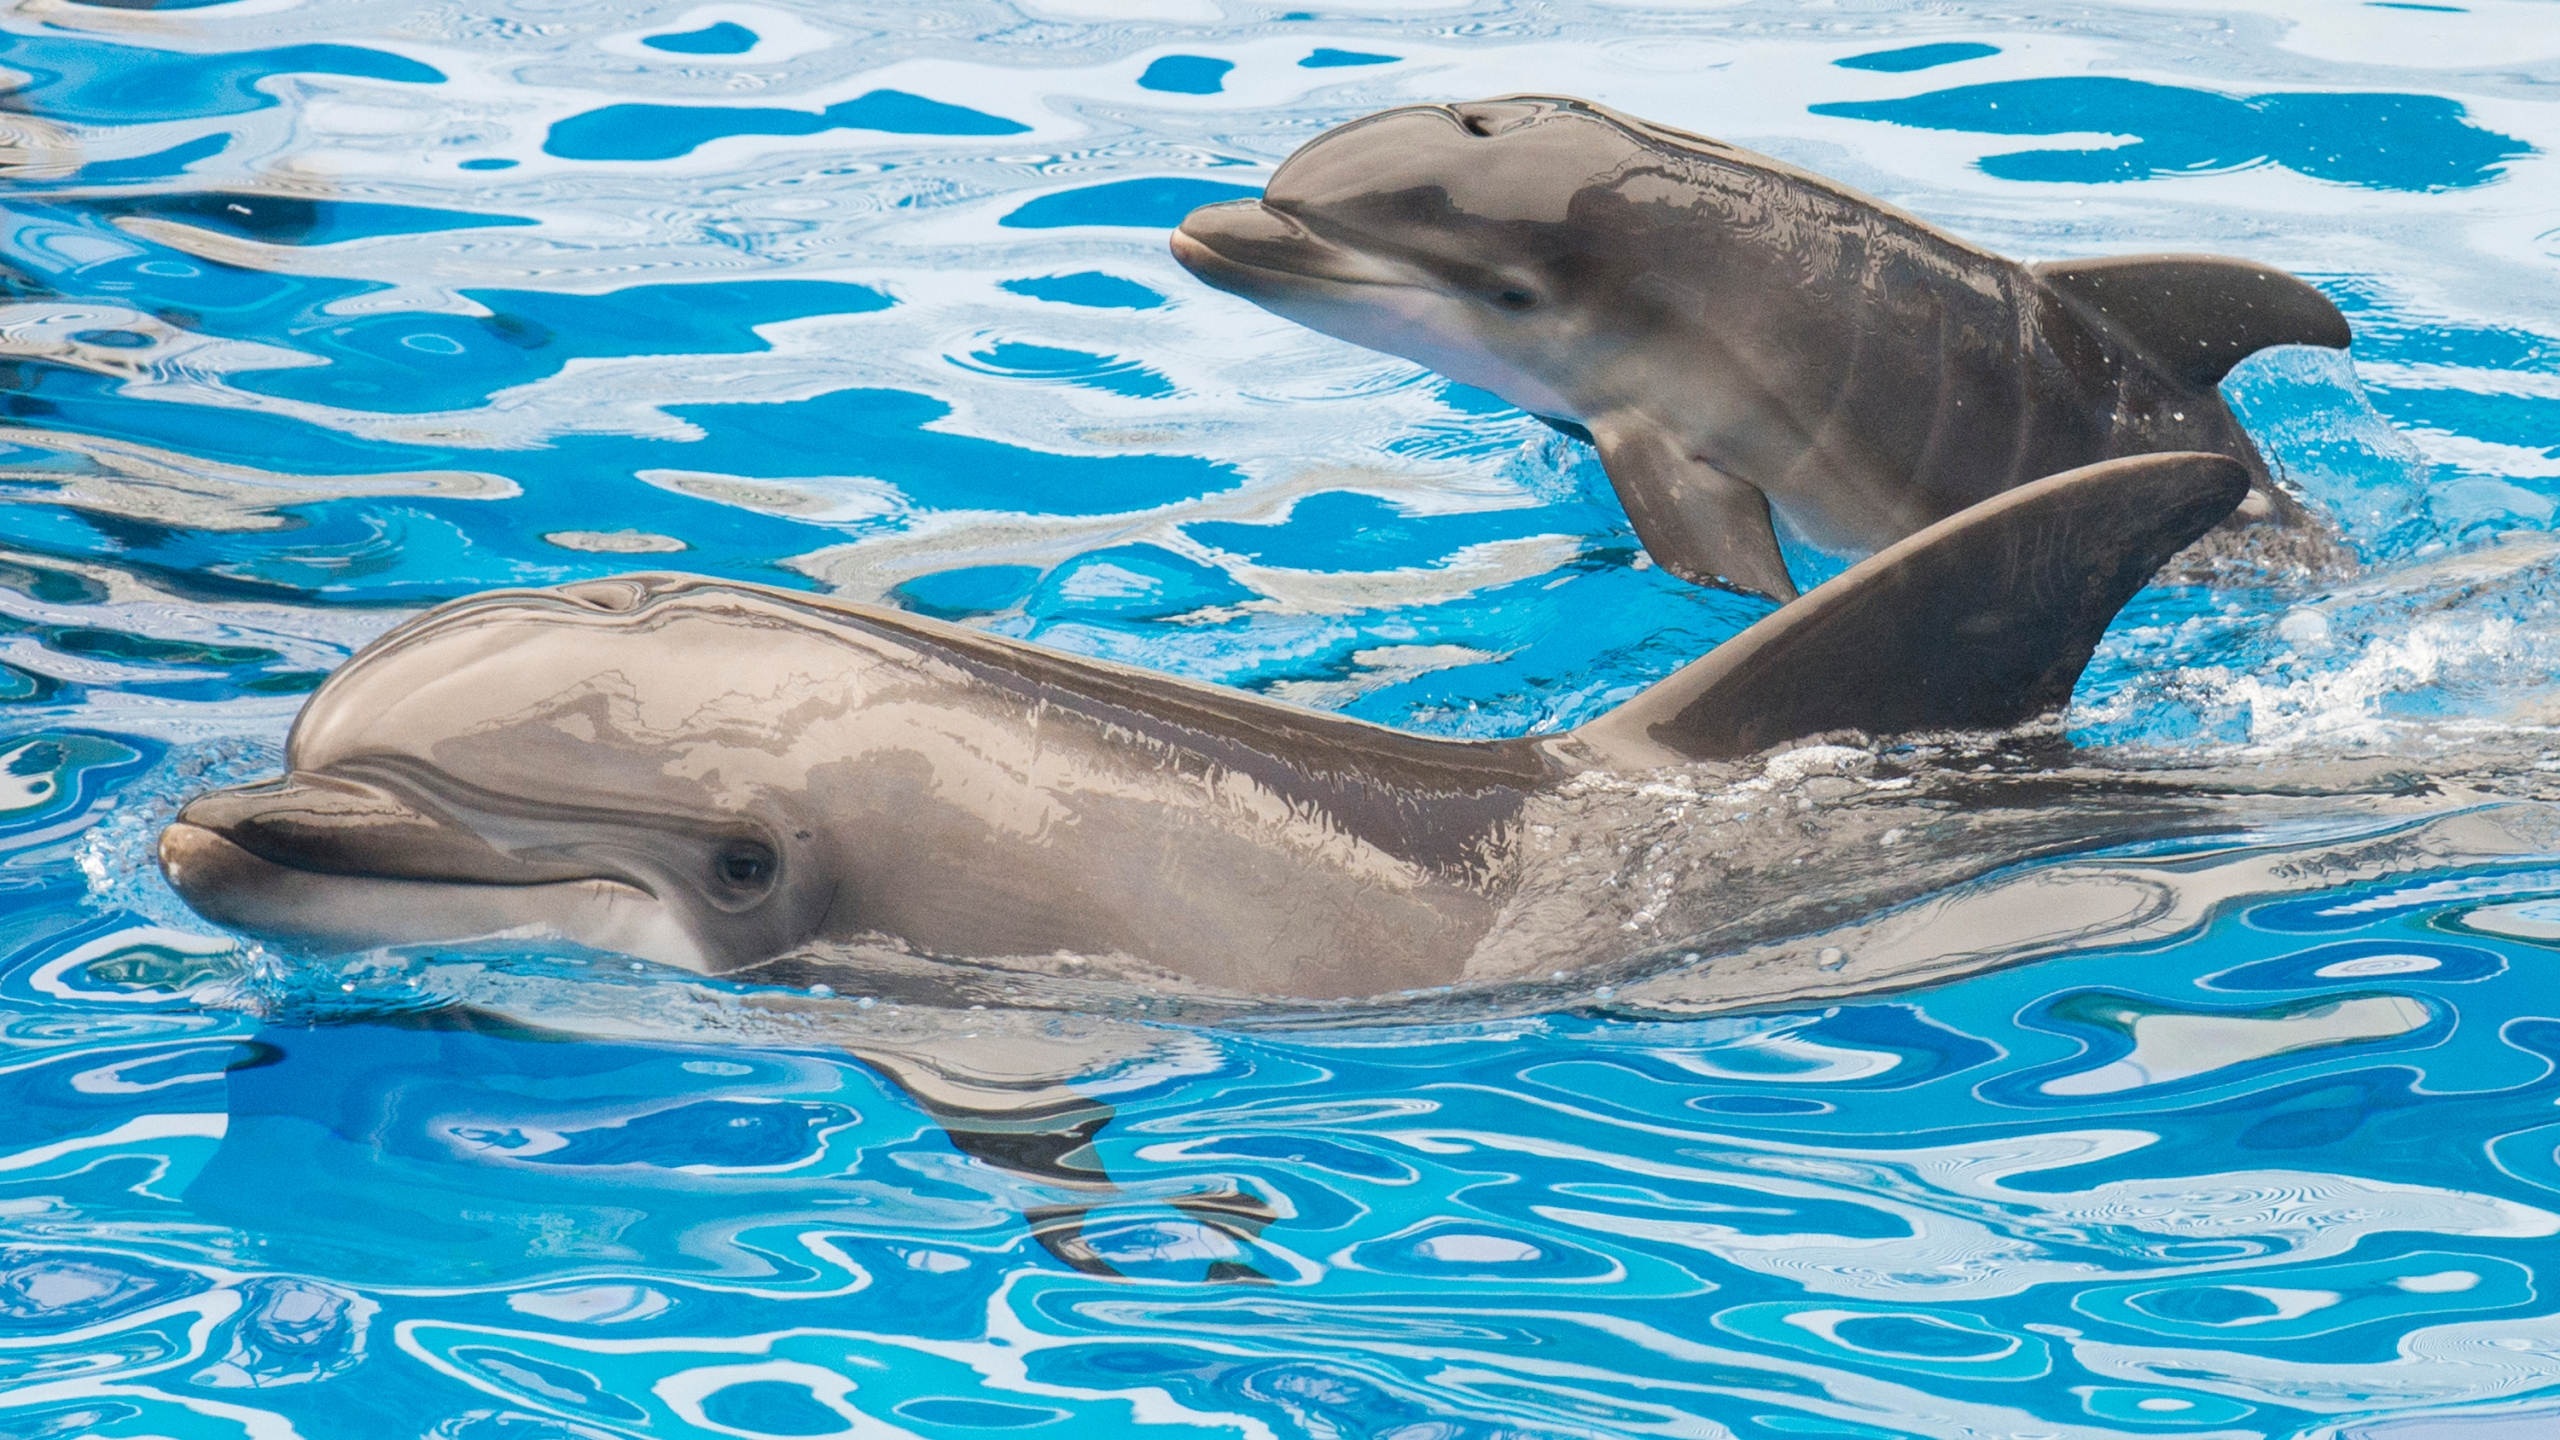 Sadie, a 13-year-old bottlenose dolphin at SeaWorld San Diego, swims with her newborn calf at the marine park's Dolphin Stadium Oct. 20, 2014, in San Diego. (Mike Aguilera/SeaWorld San Diego via Getty Images)